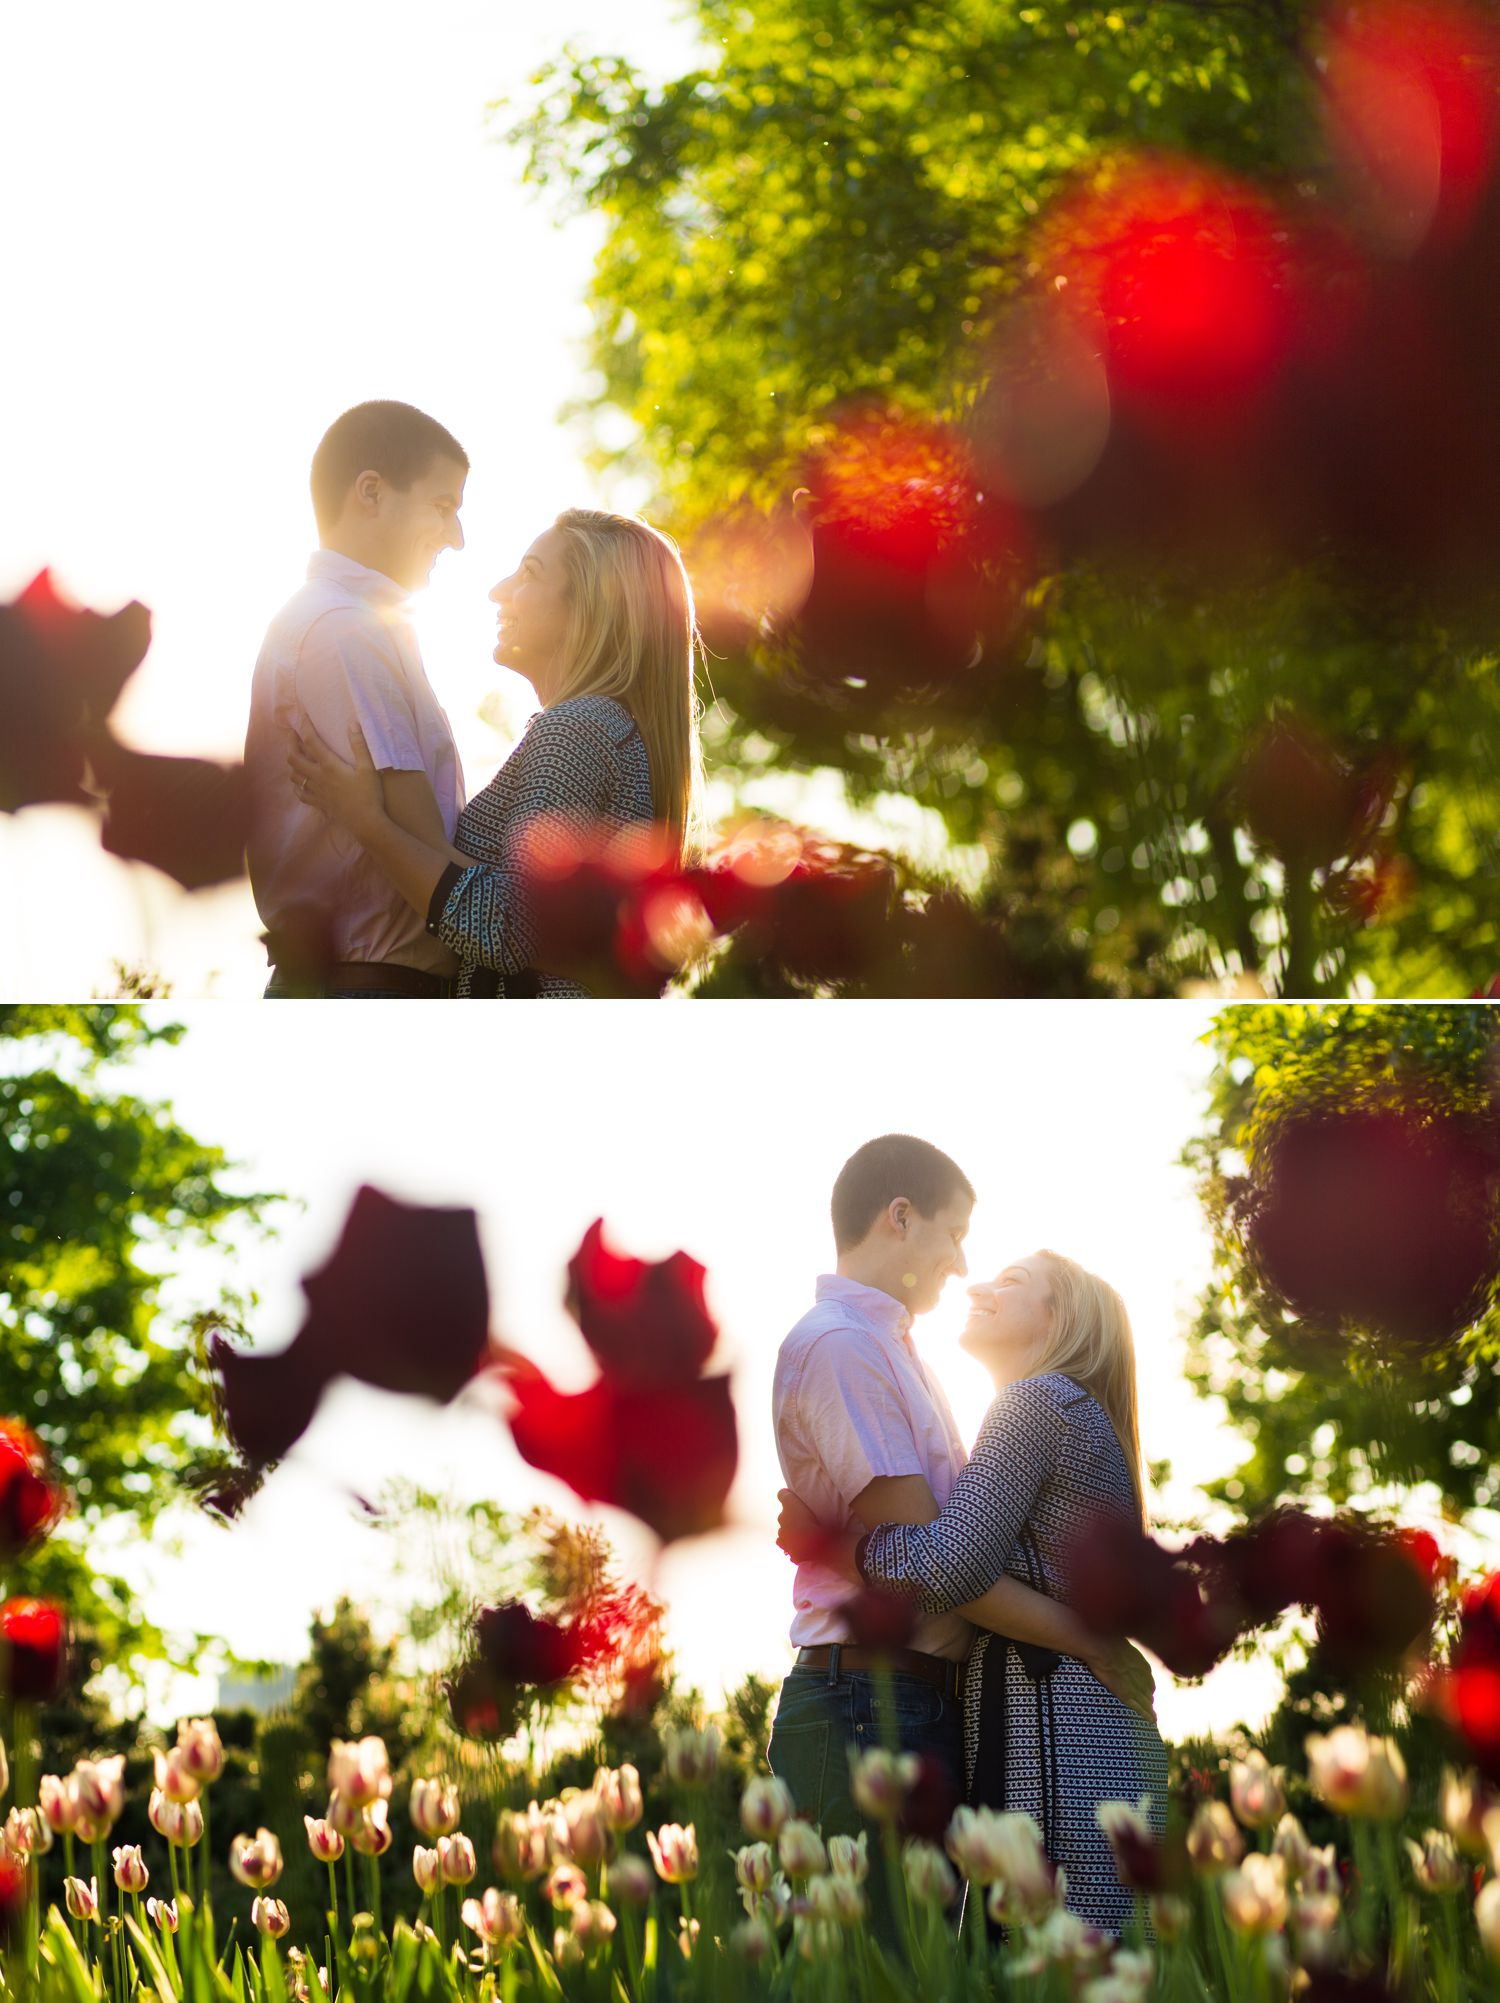 Photos from an engagement shoot in downtown Ottawa amongst the tulips